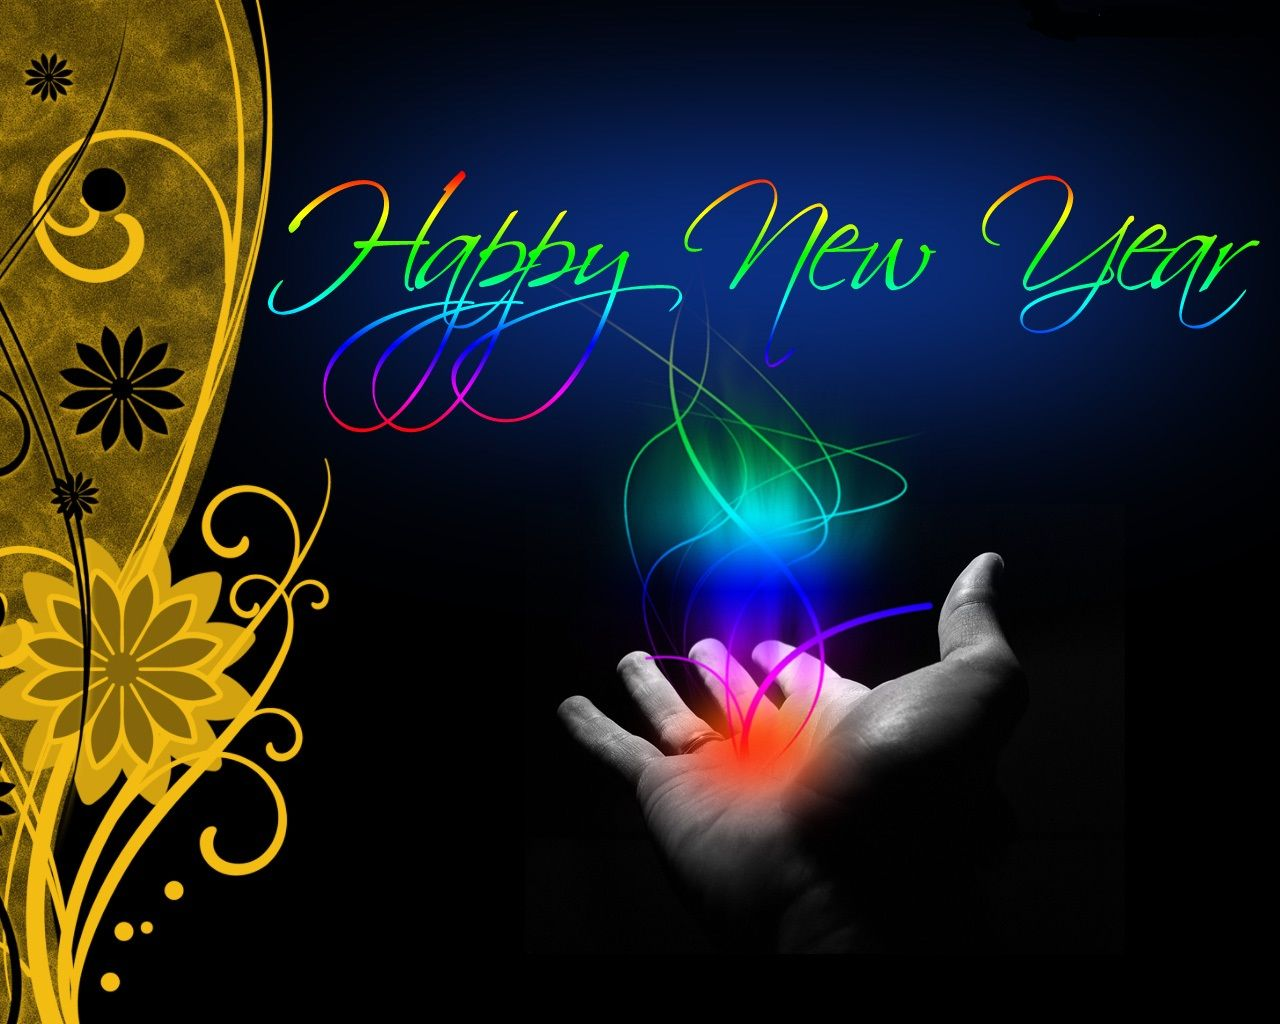 Colorful Happy New Year Pictures Photos And Images For